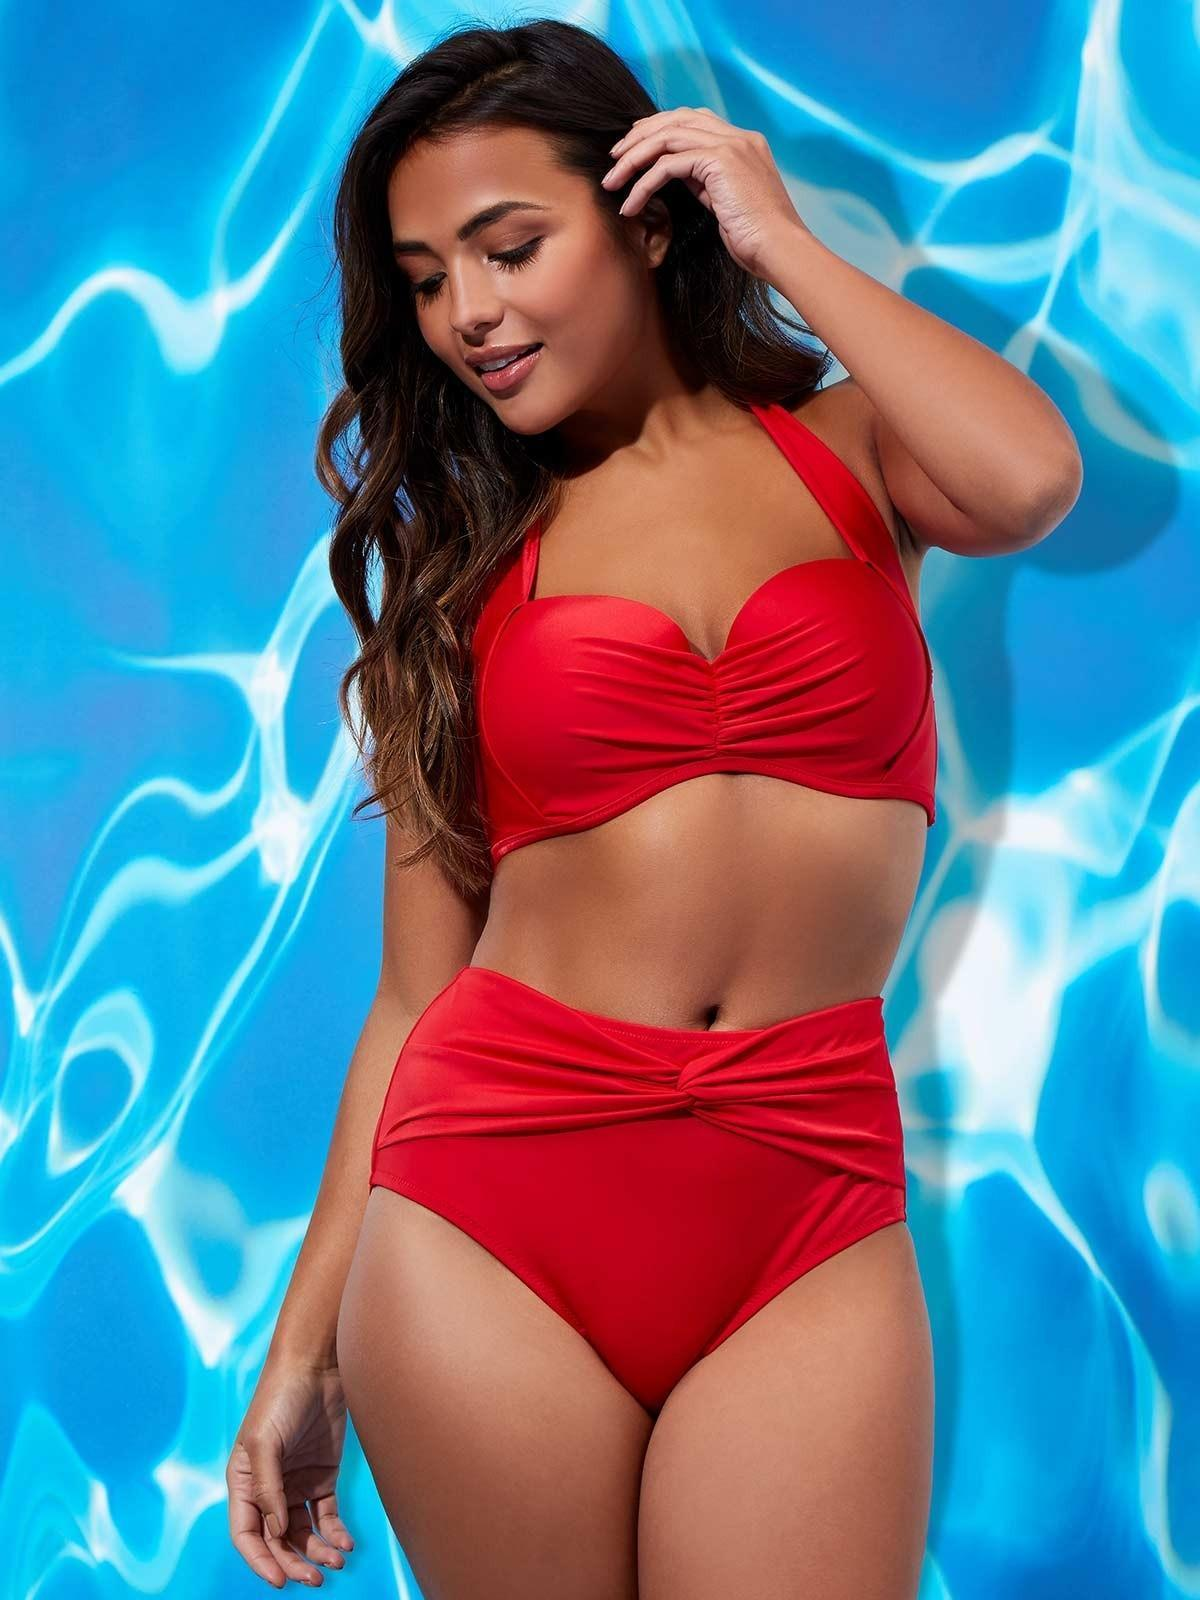 A high-waisted bikini is a must this summer season; this flattering style in red is bound to turn heads on the beach.